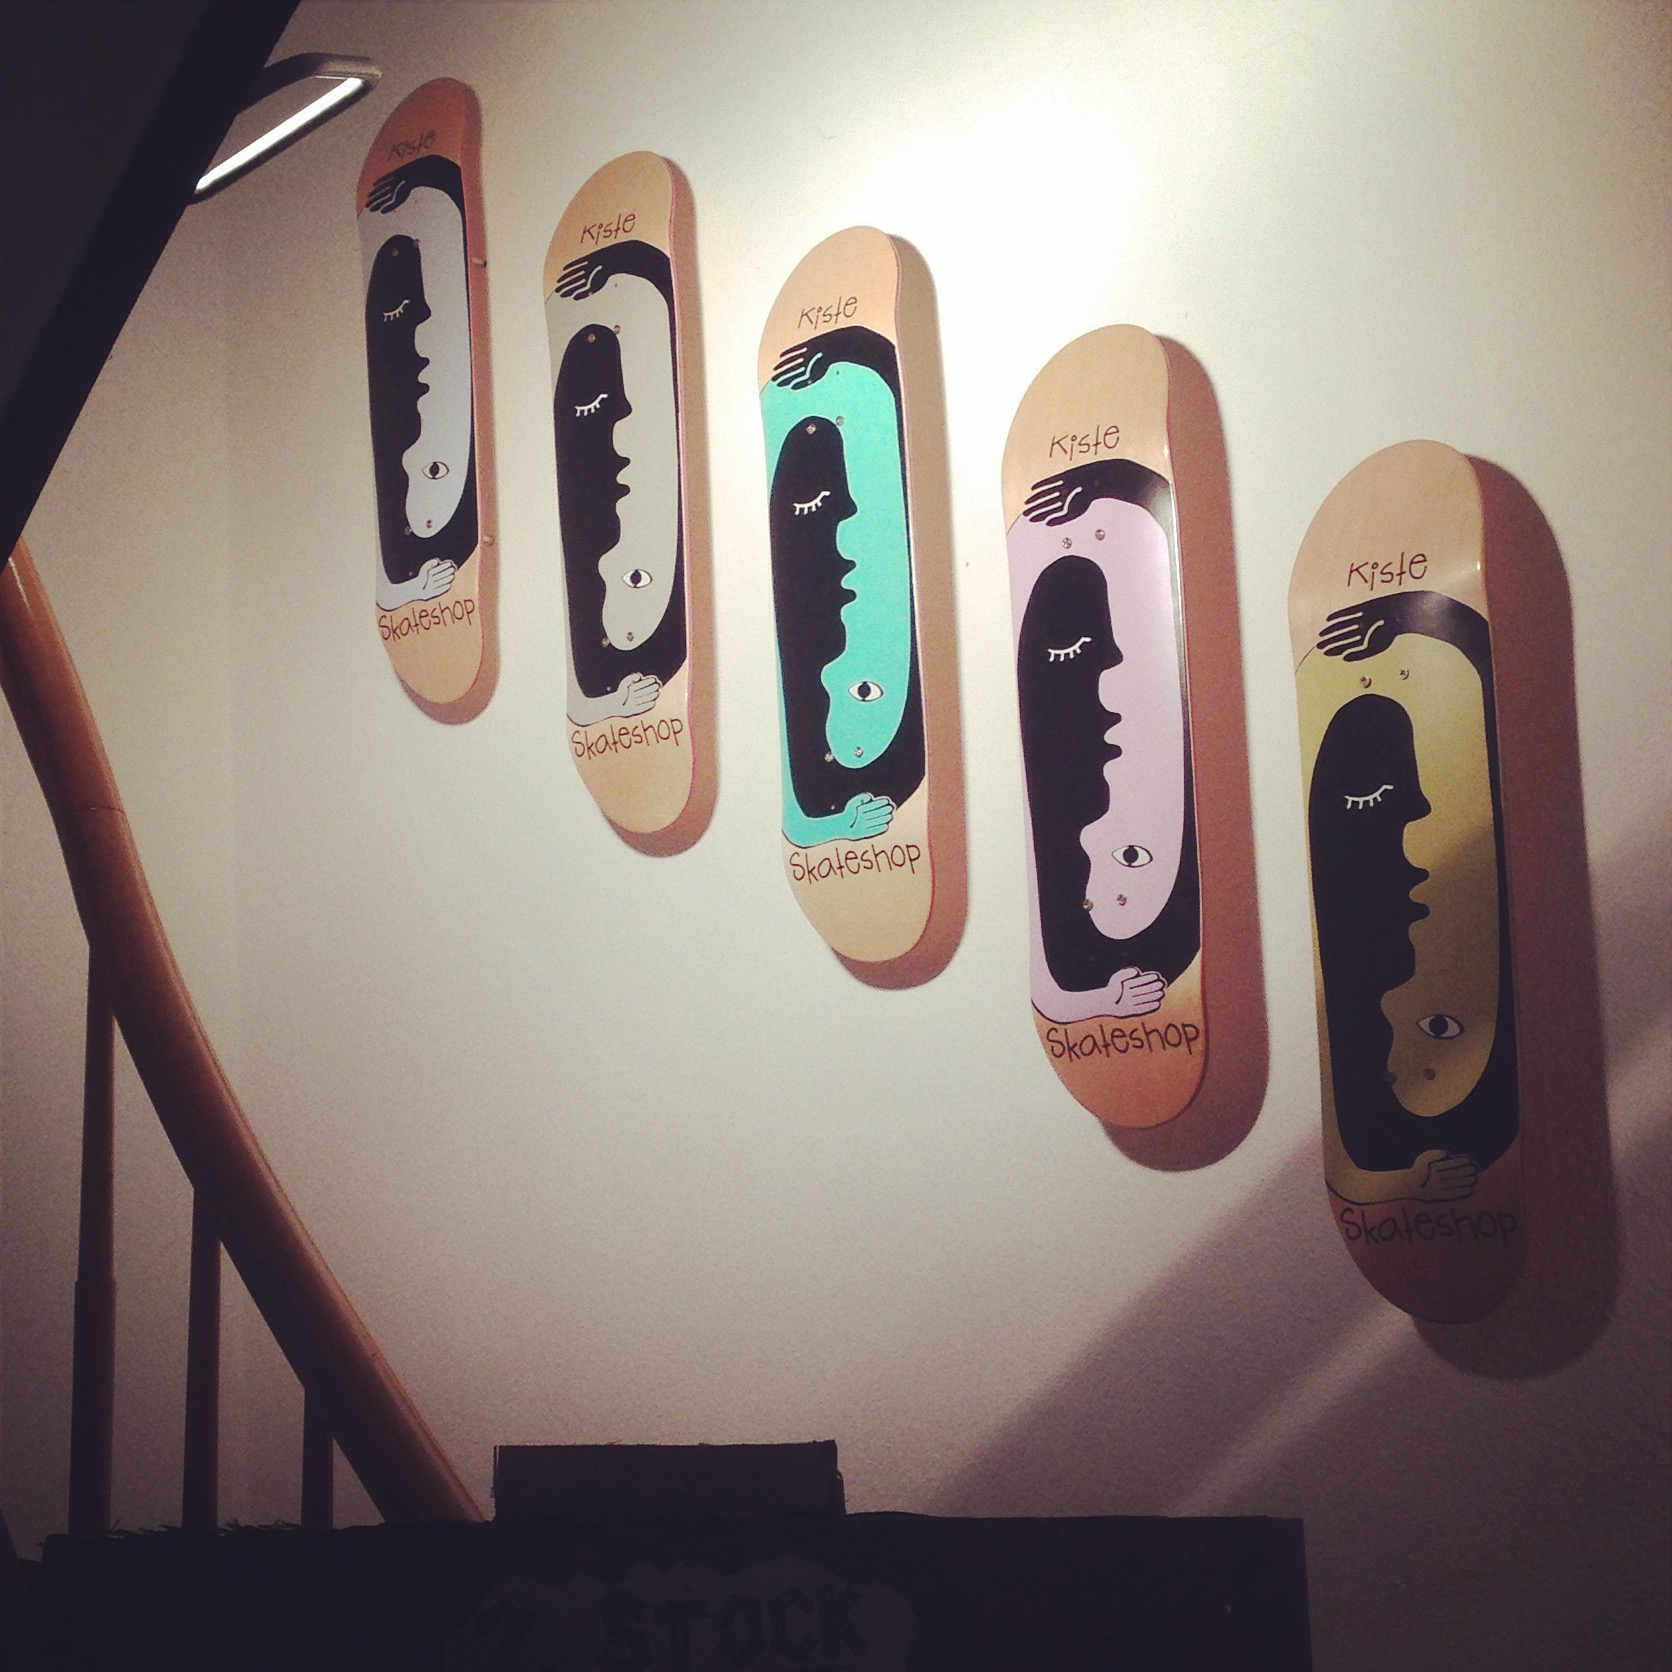 Skateboardgrafik_Alex Klein Design 2014.